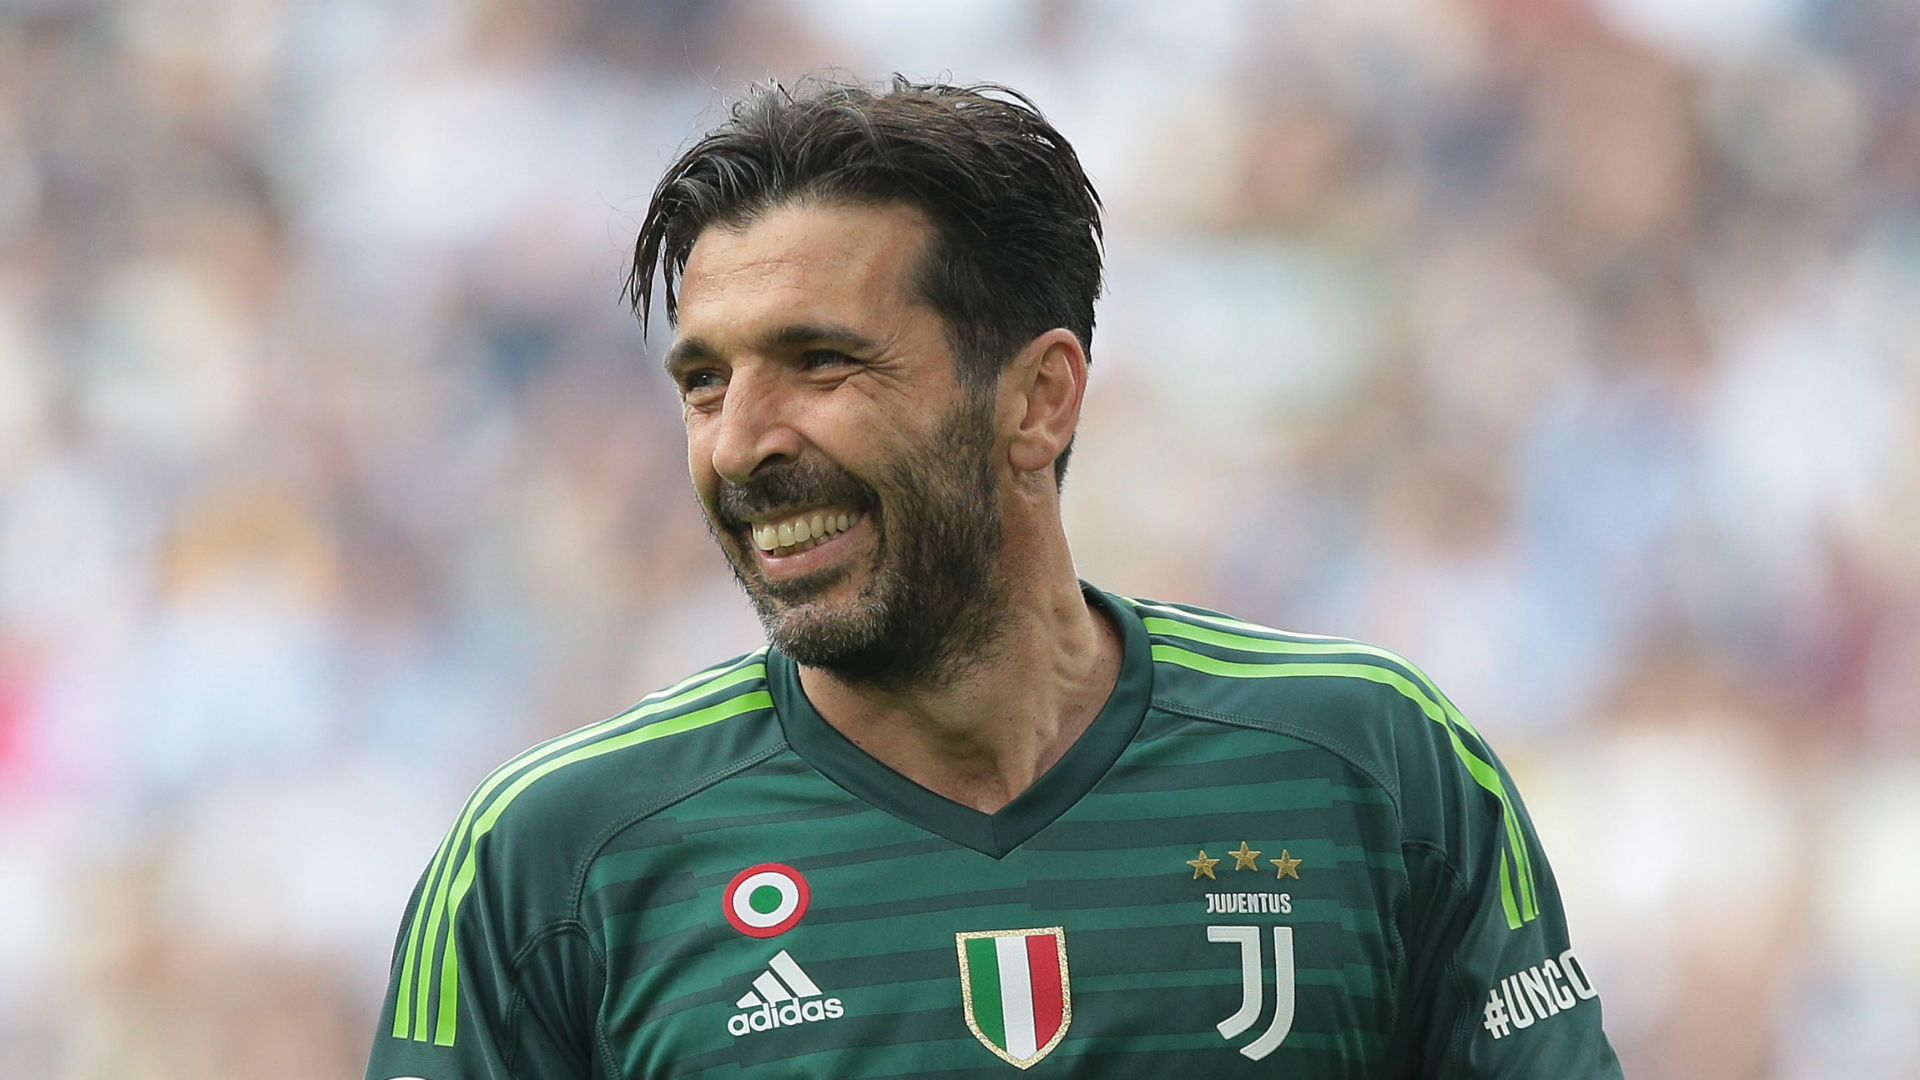 Sarri's plan for Juventus will come together in two months, says Buffon